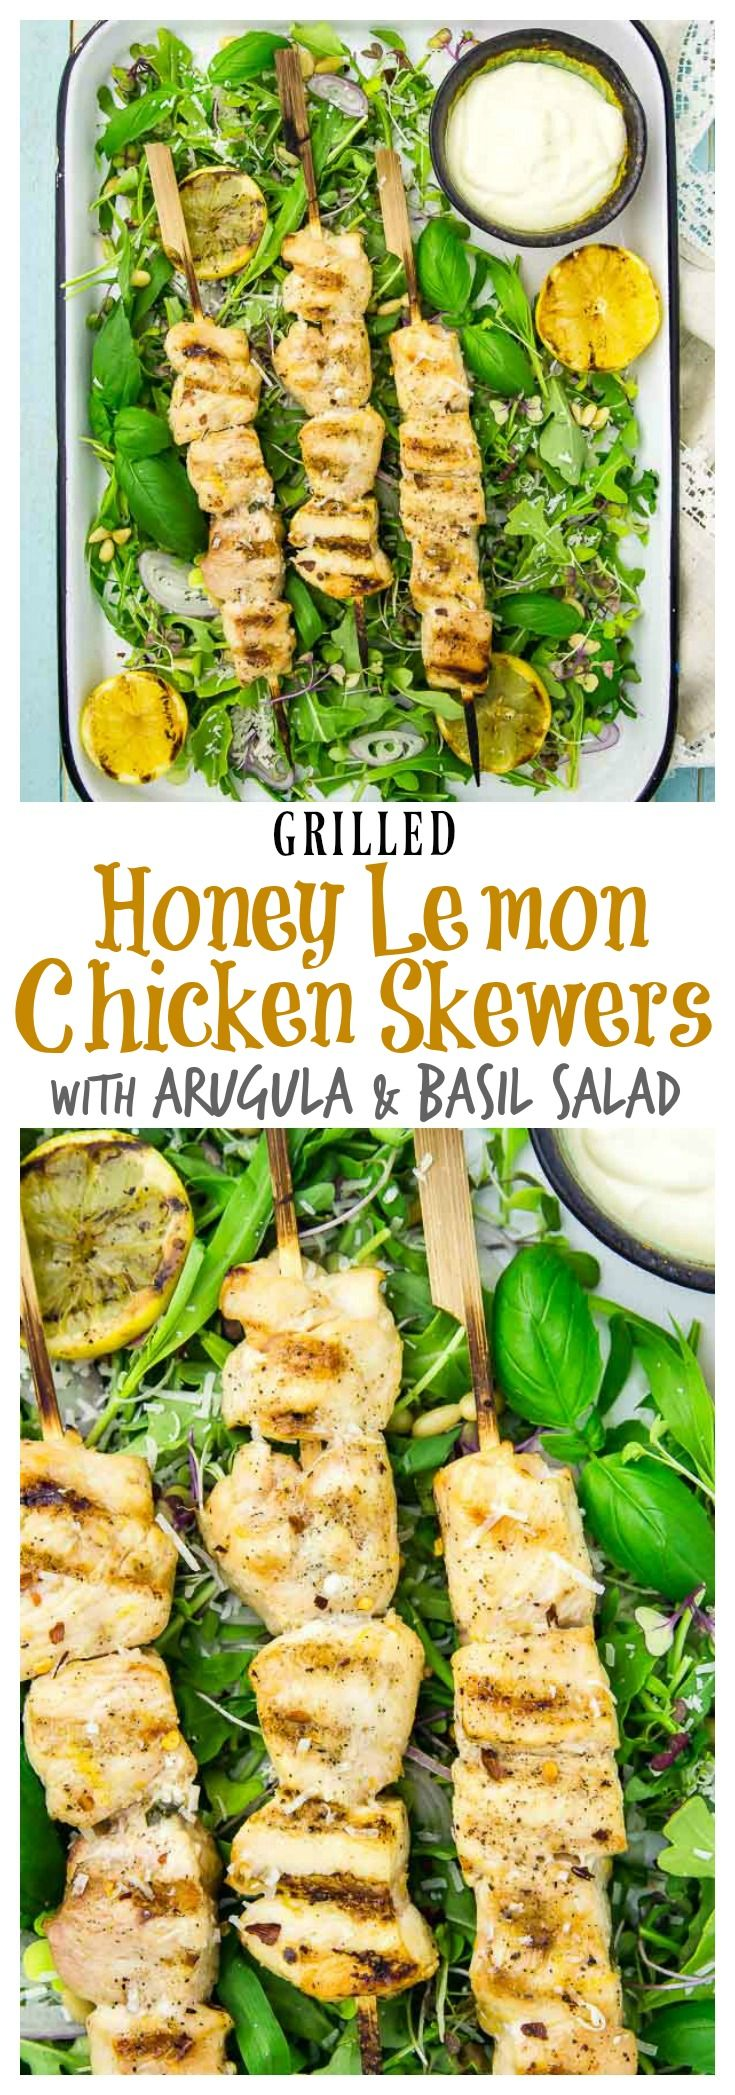 Easy Grilled Honey Lemon Chicken Skewers with Arugula & Basil Salad. Only 20 minutes of hands on time required!